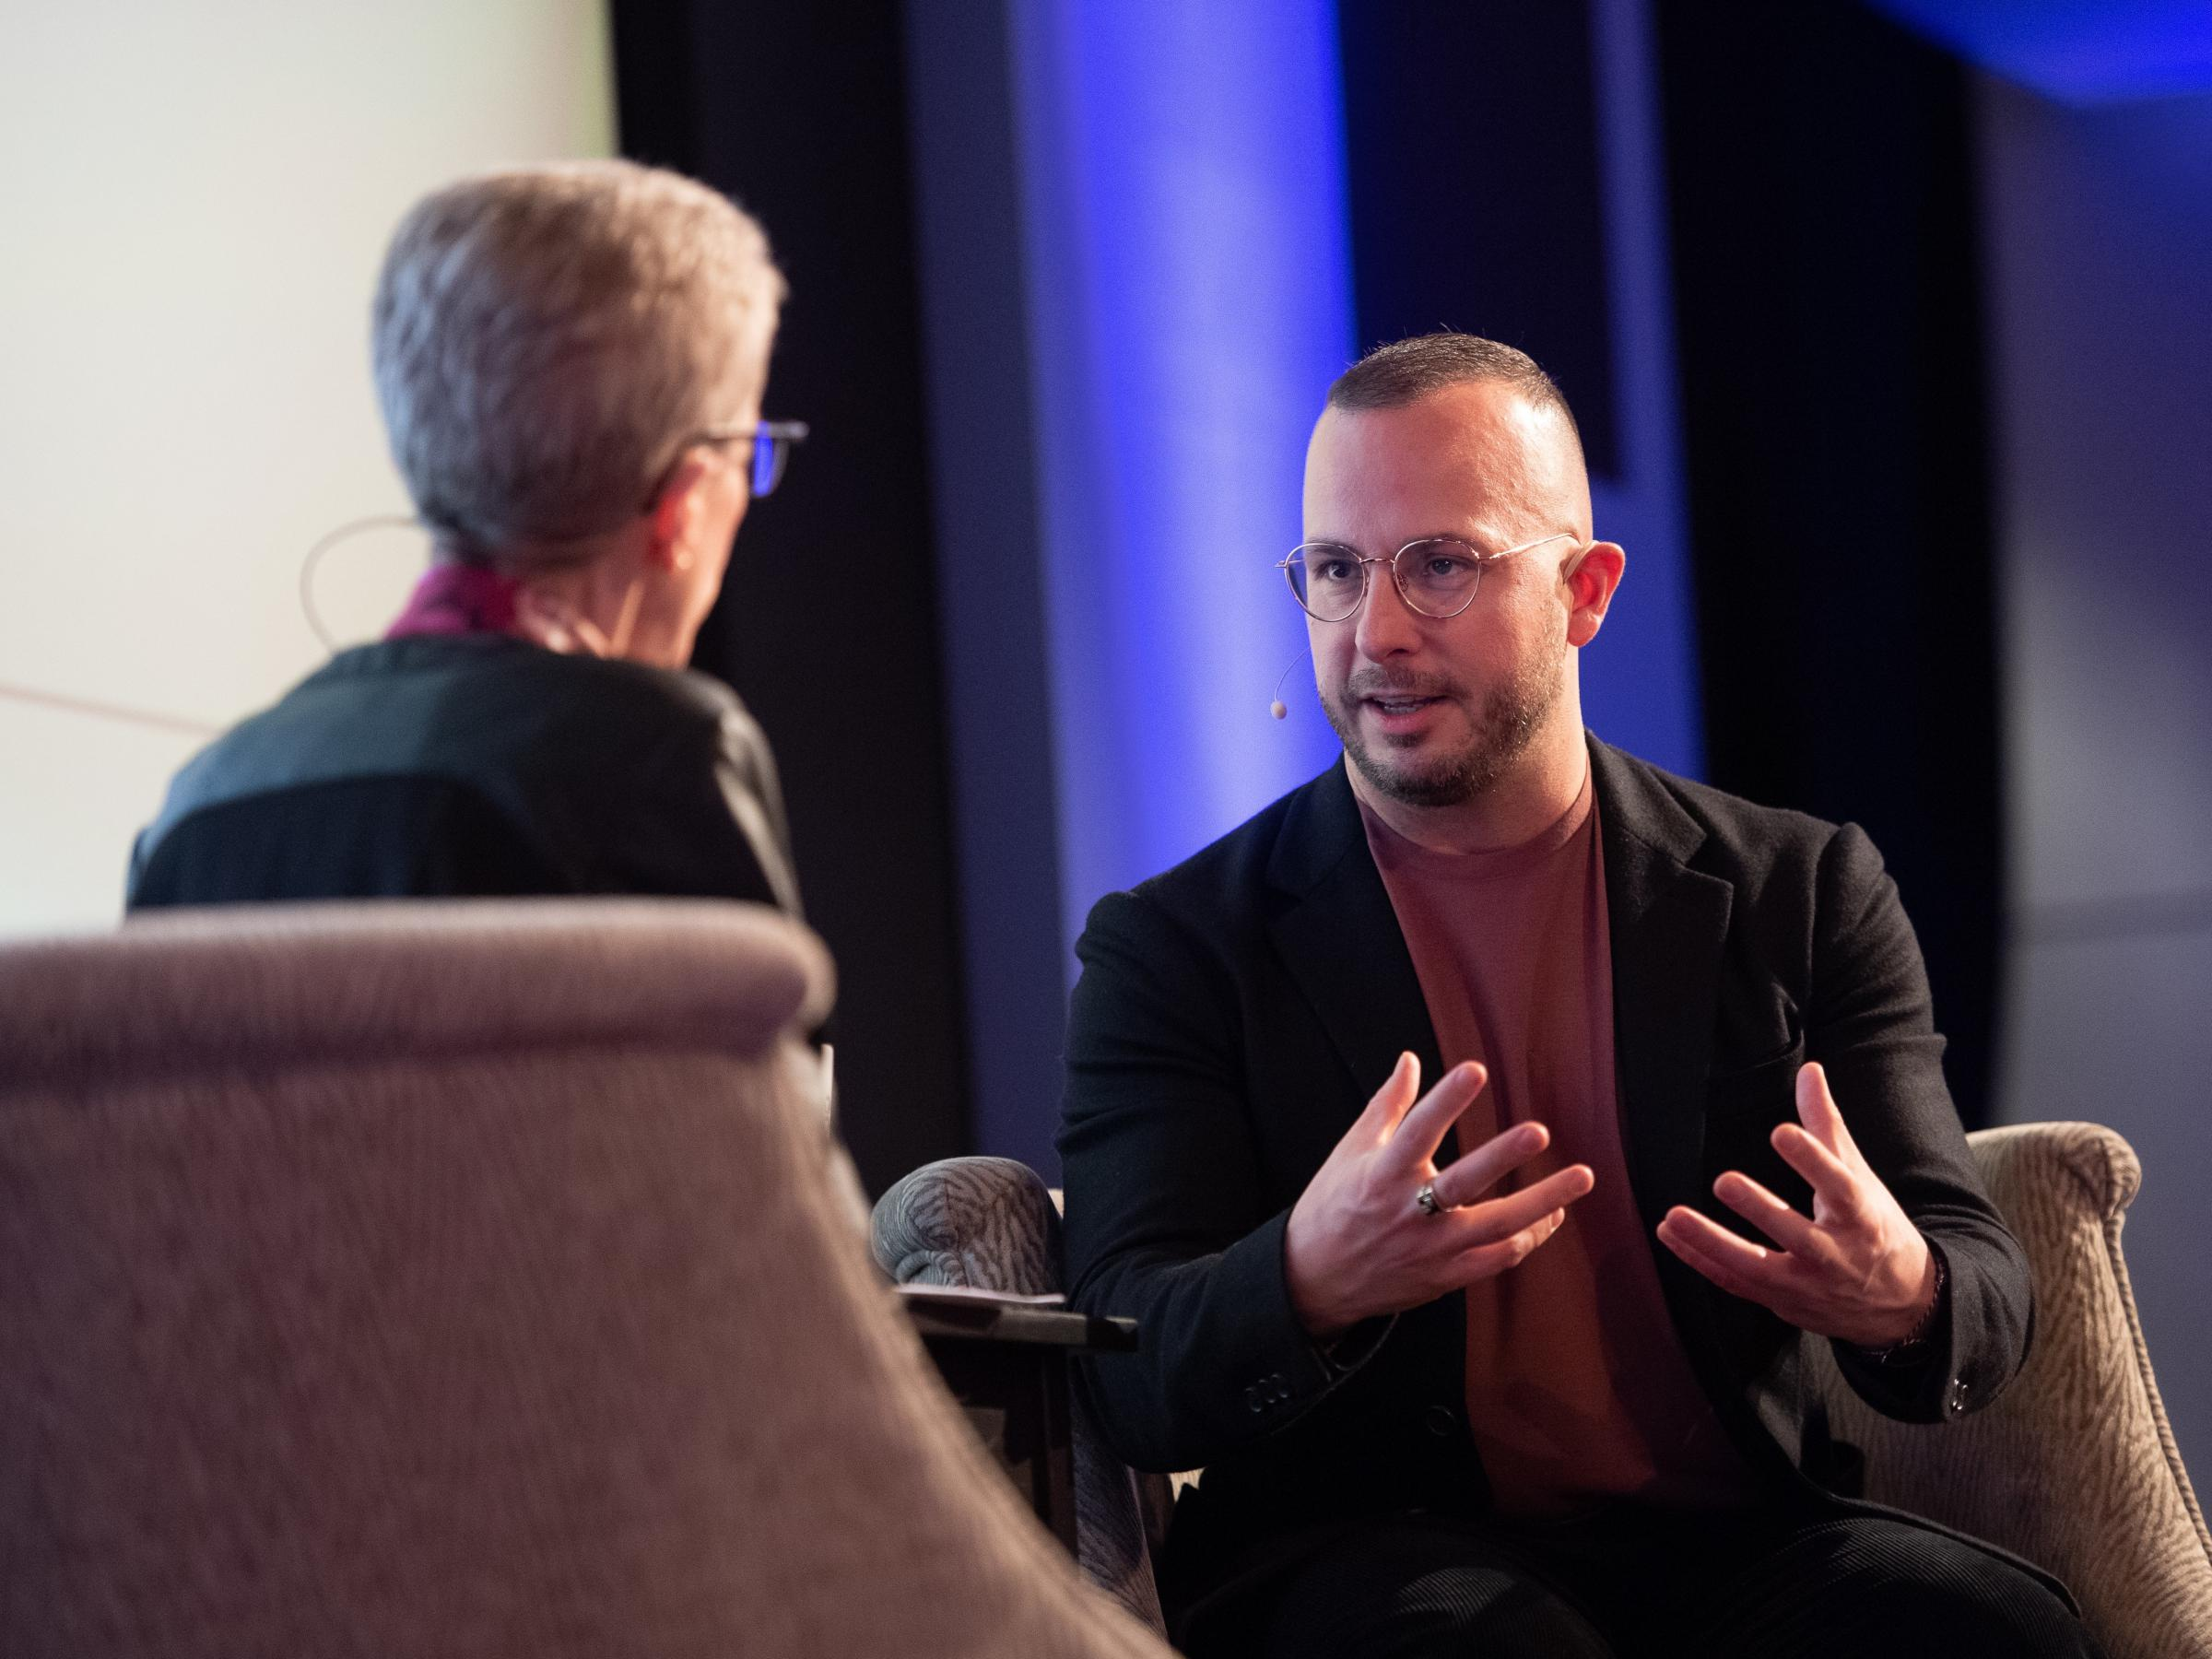 Fresh Airs Terry Gross Interviewed Conductor Yannick Nzet Sguin Before A Live Audience At WHYY On April 2 2019